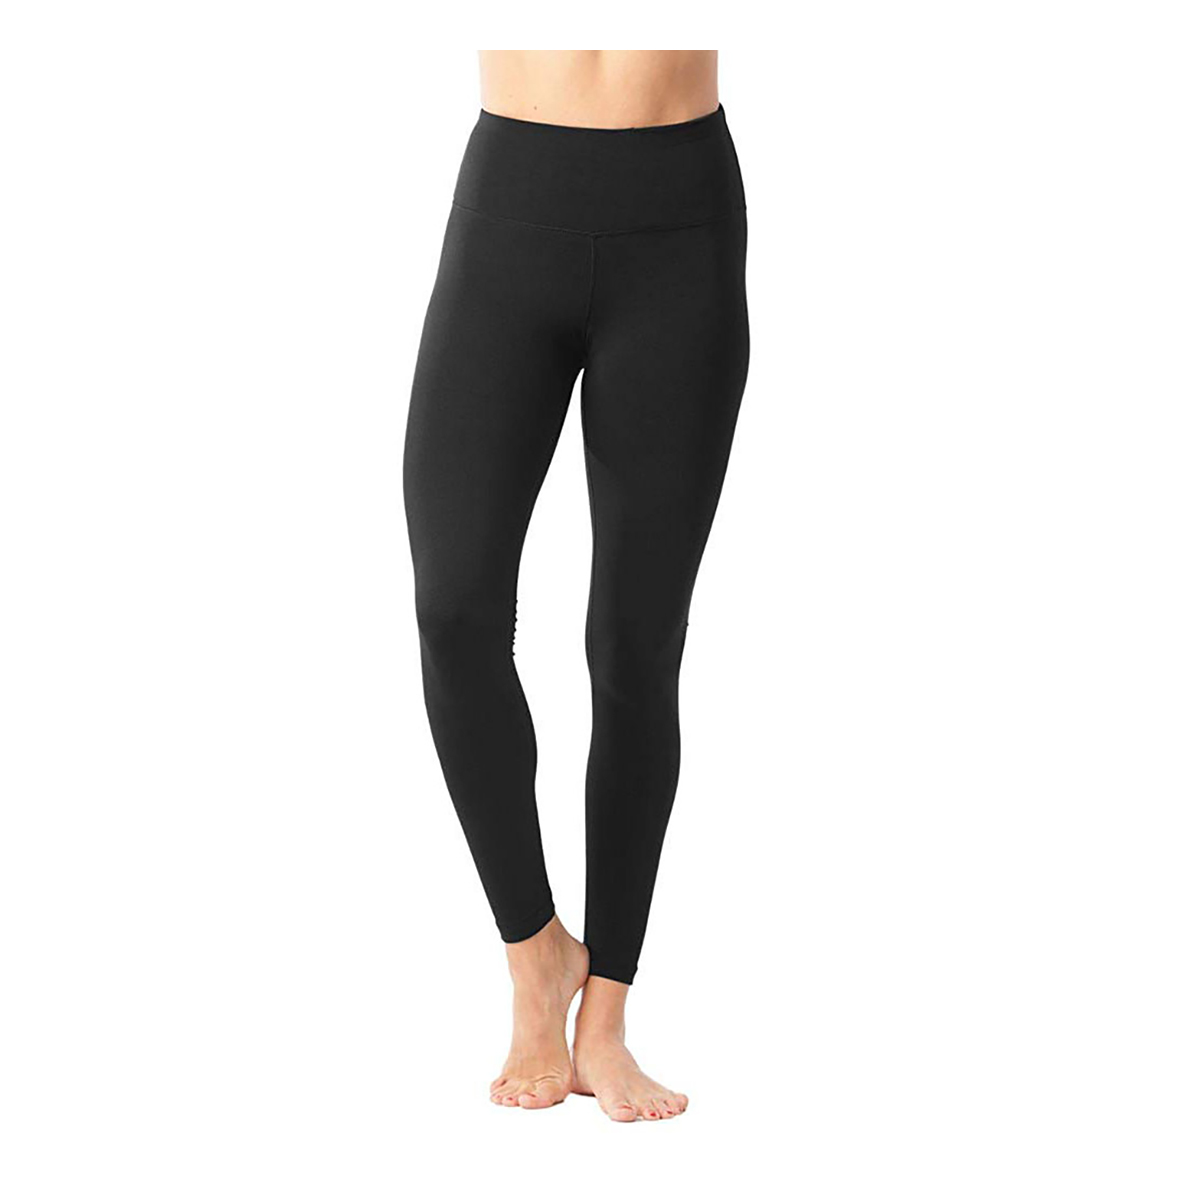 491645a88efc3 11 Top-Rated Black Leggings That Are So Comfortable, You'll Never ...